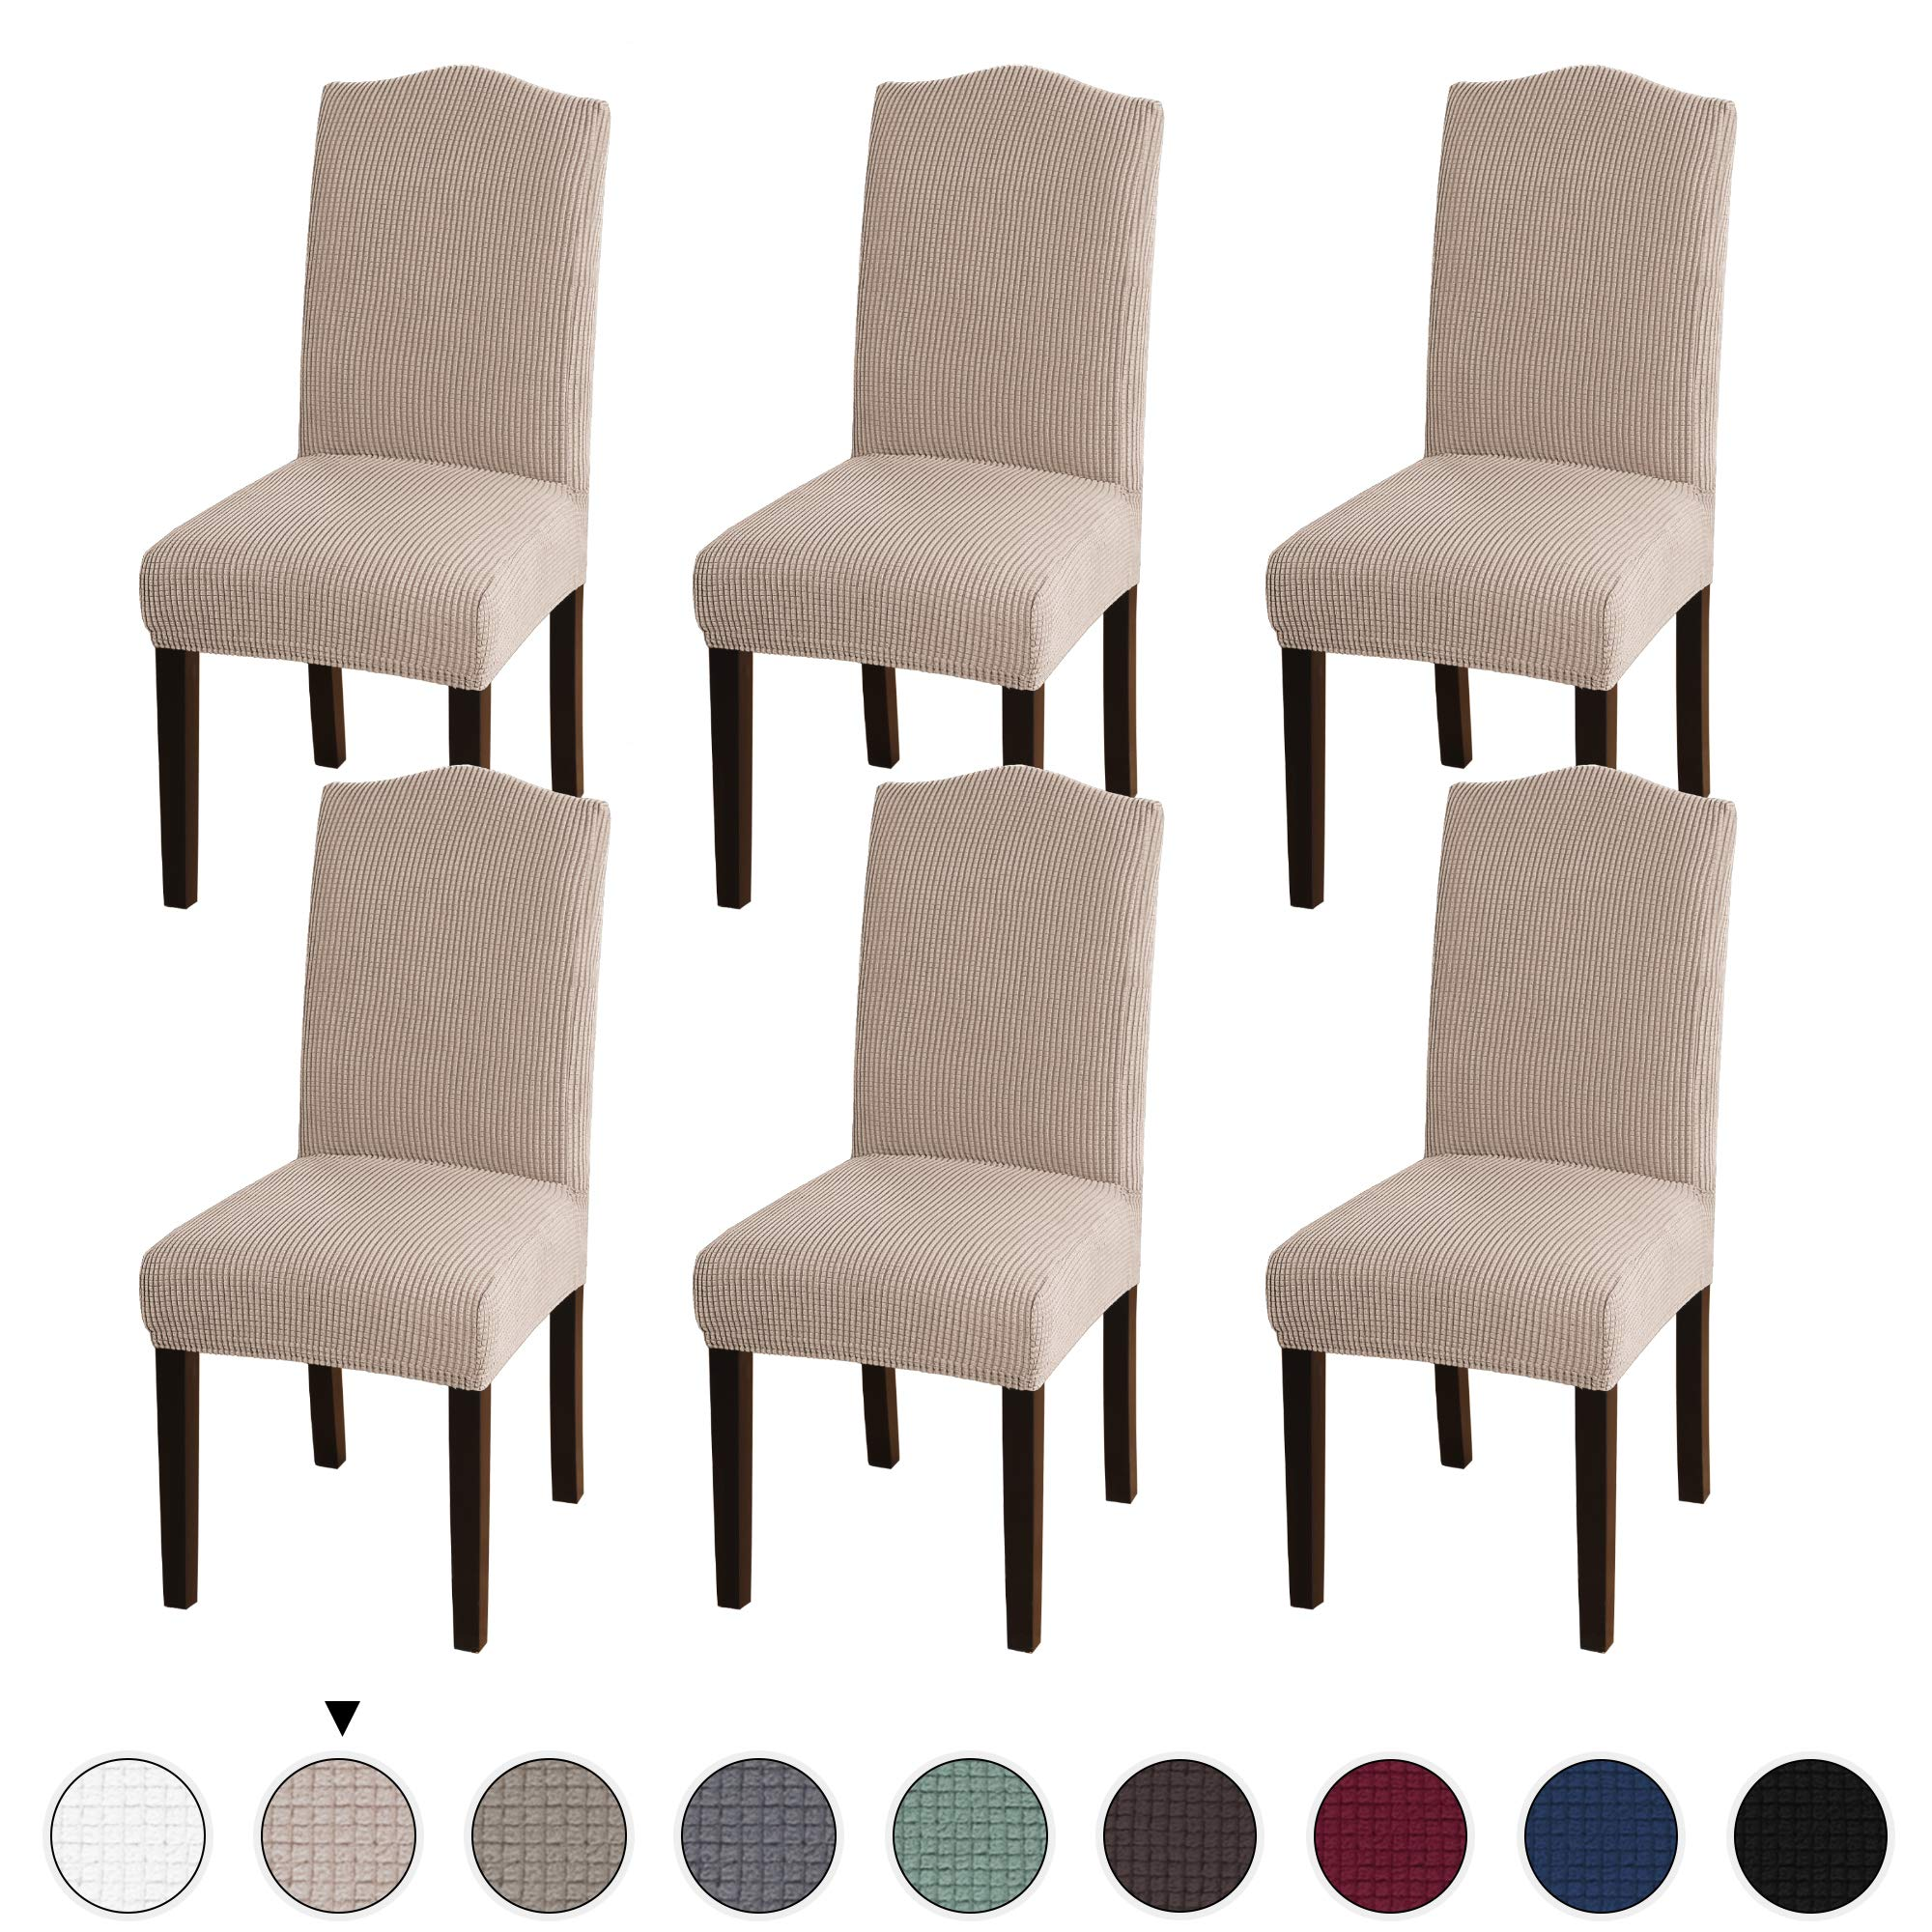 Turquoize Stretch Dining Chair Velvet Fabric Slipcovers Washable Removable Chair Slipcover Dining Chair Protector Cover for Dining Room Set of 6, Khika by Turquoize